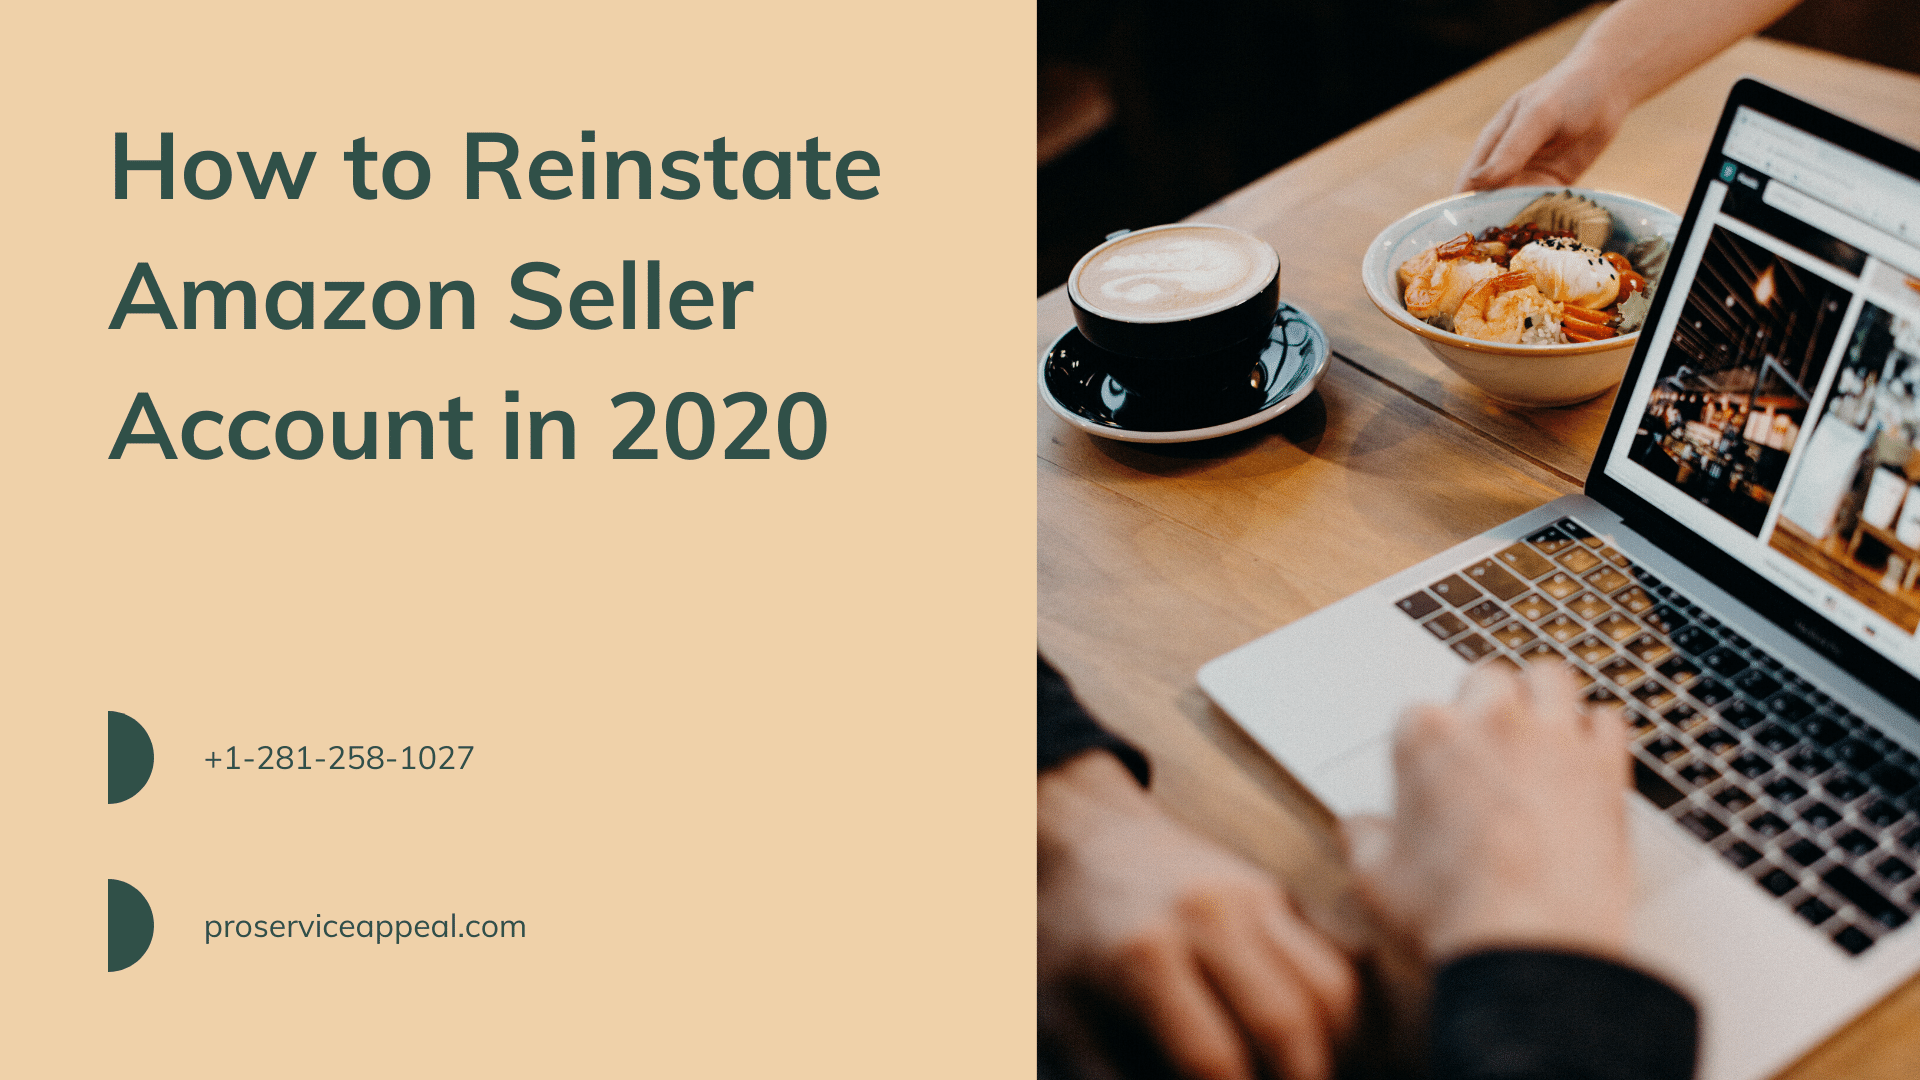 How to Reinstate Amazon Seller Account in 2020?